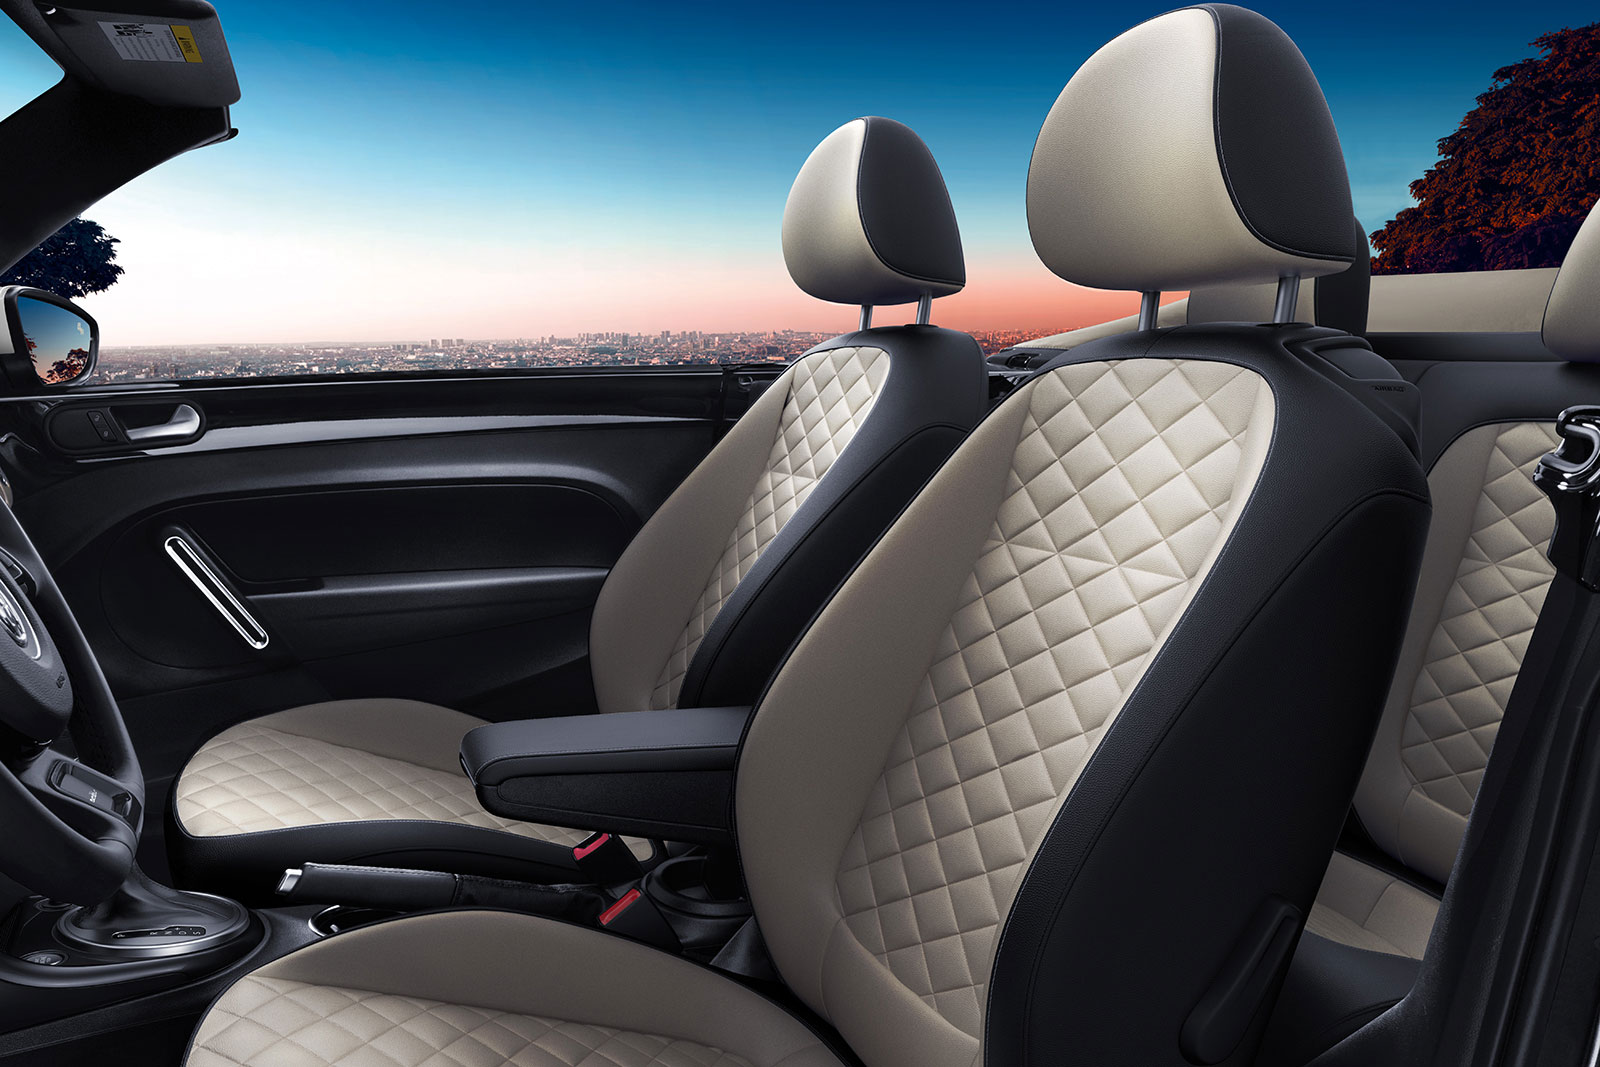 2019 Volkswagen Beetle Convertible Interior Diamond-Stitched Seating